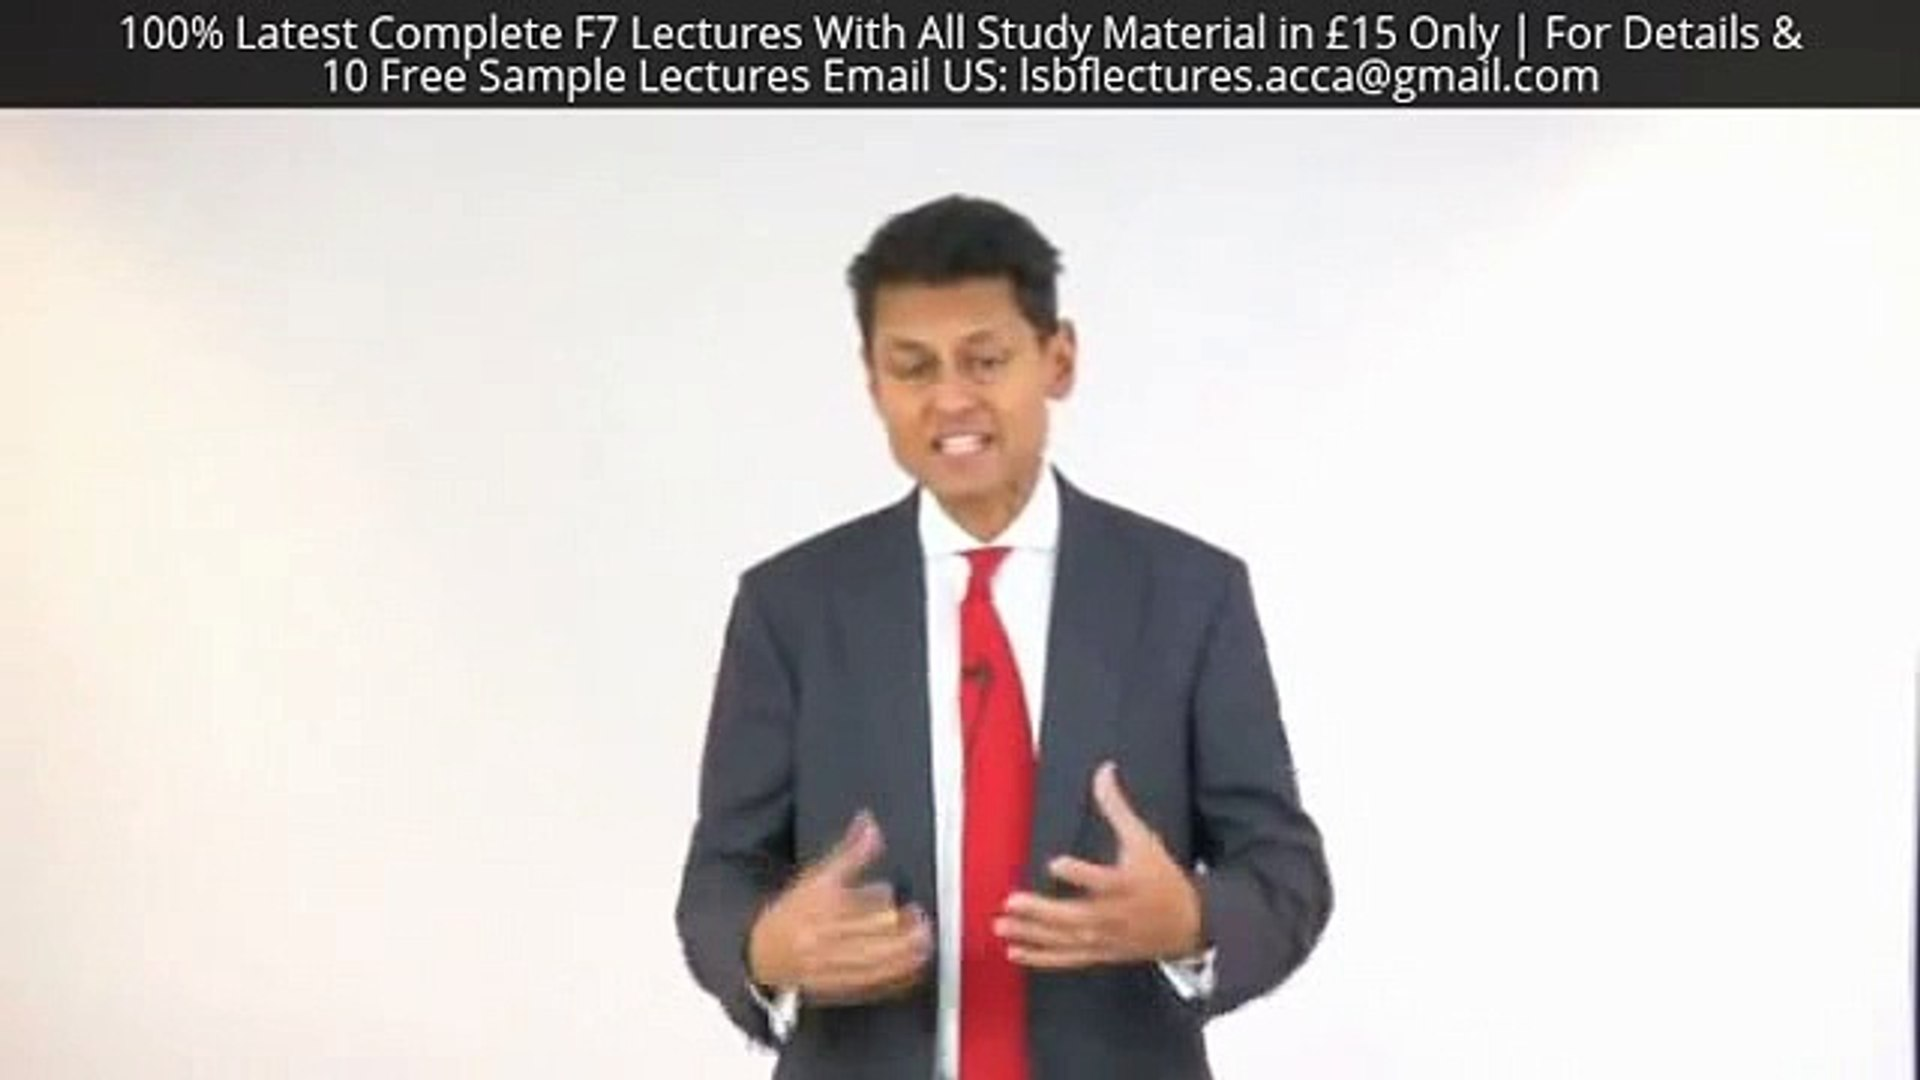 LSBF Latest F7 Lectures